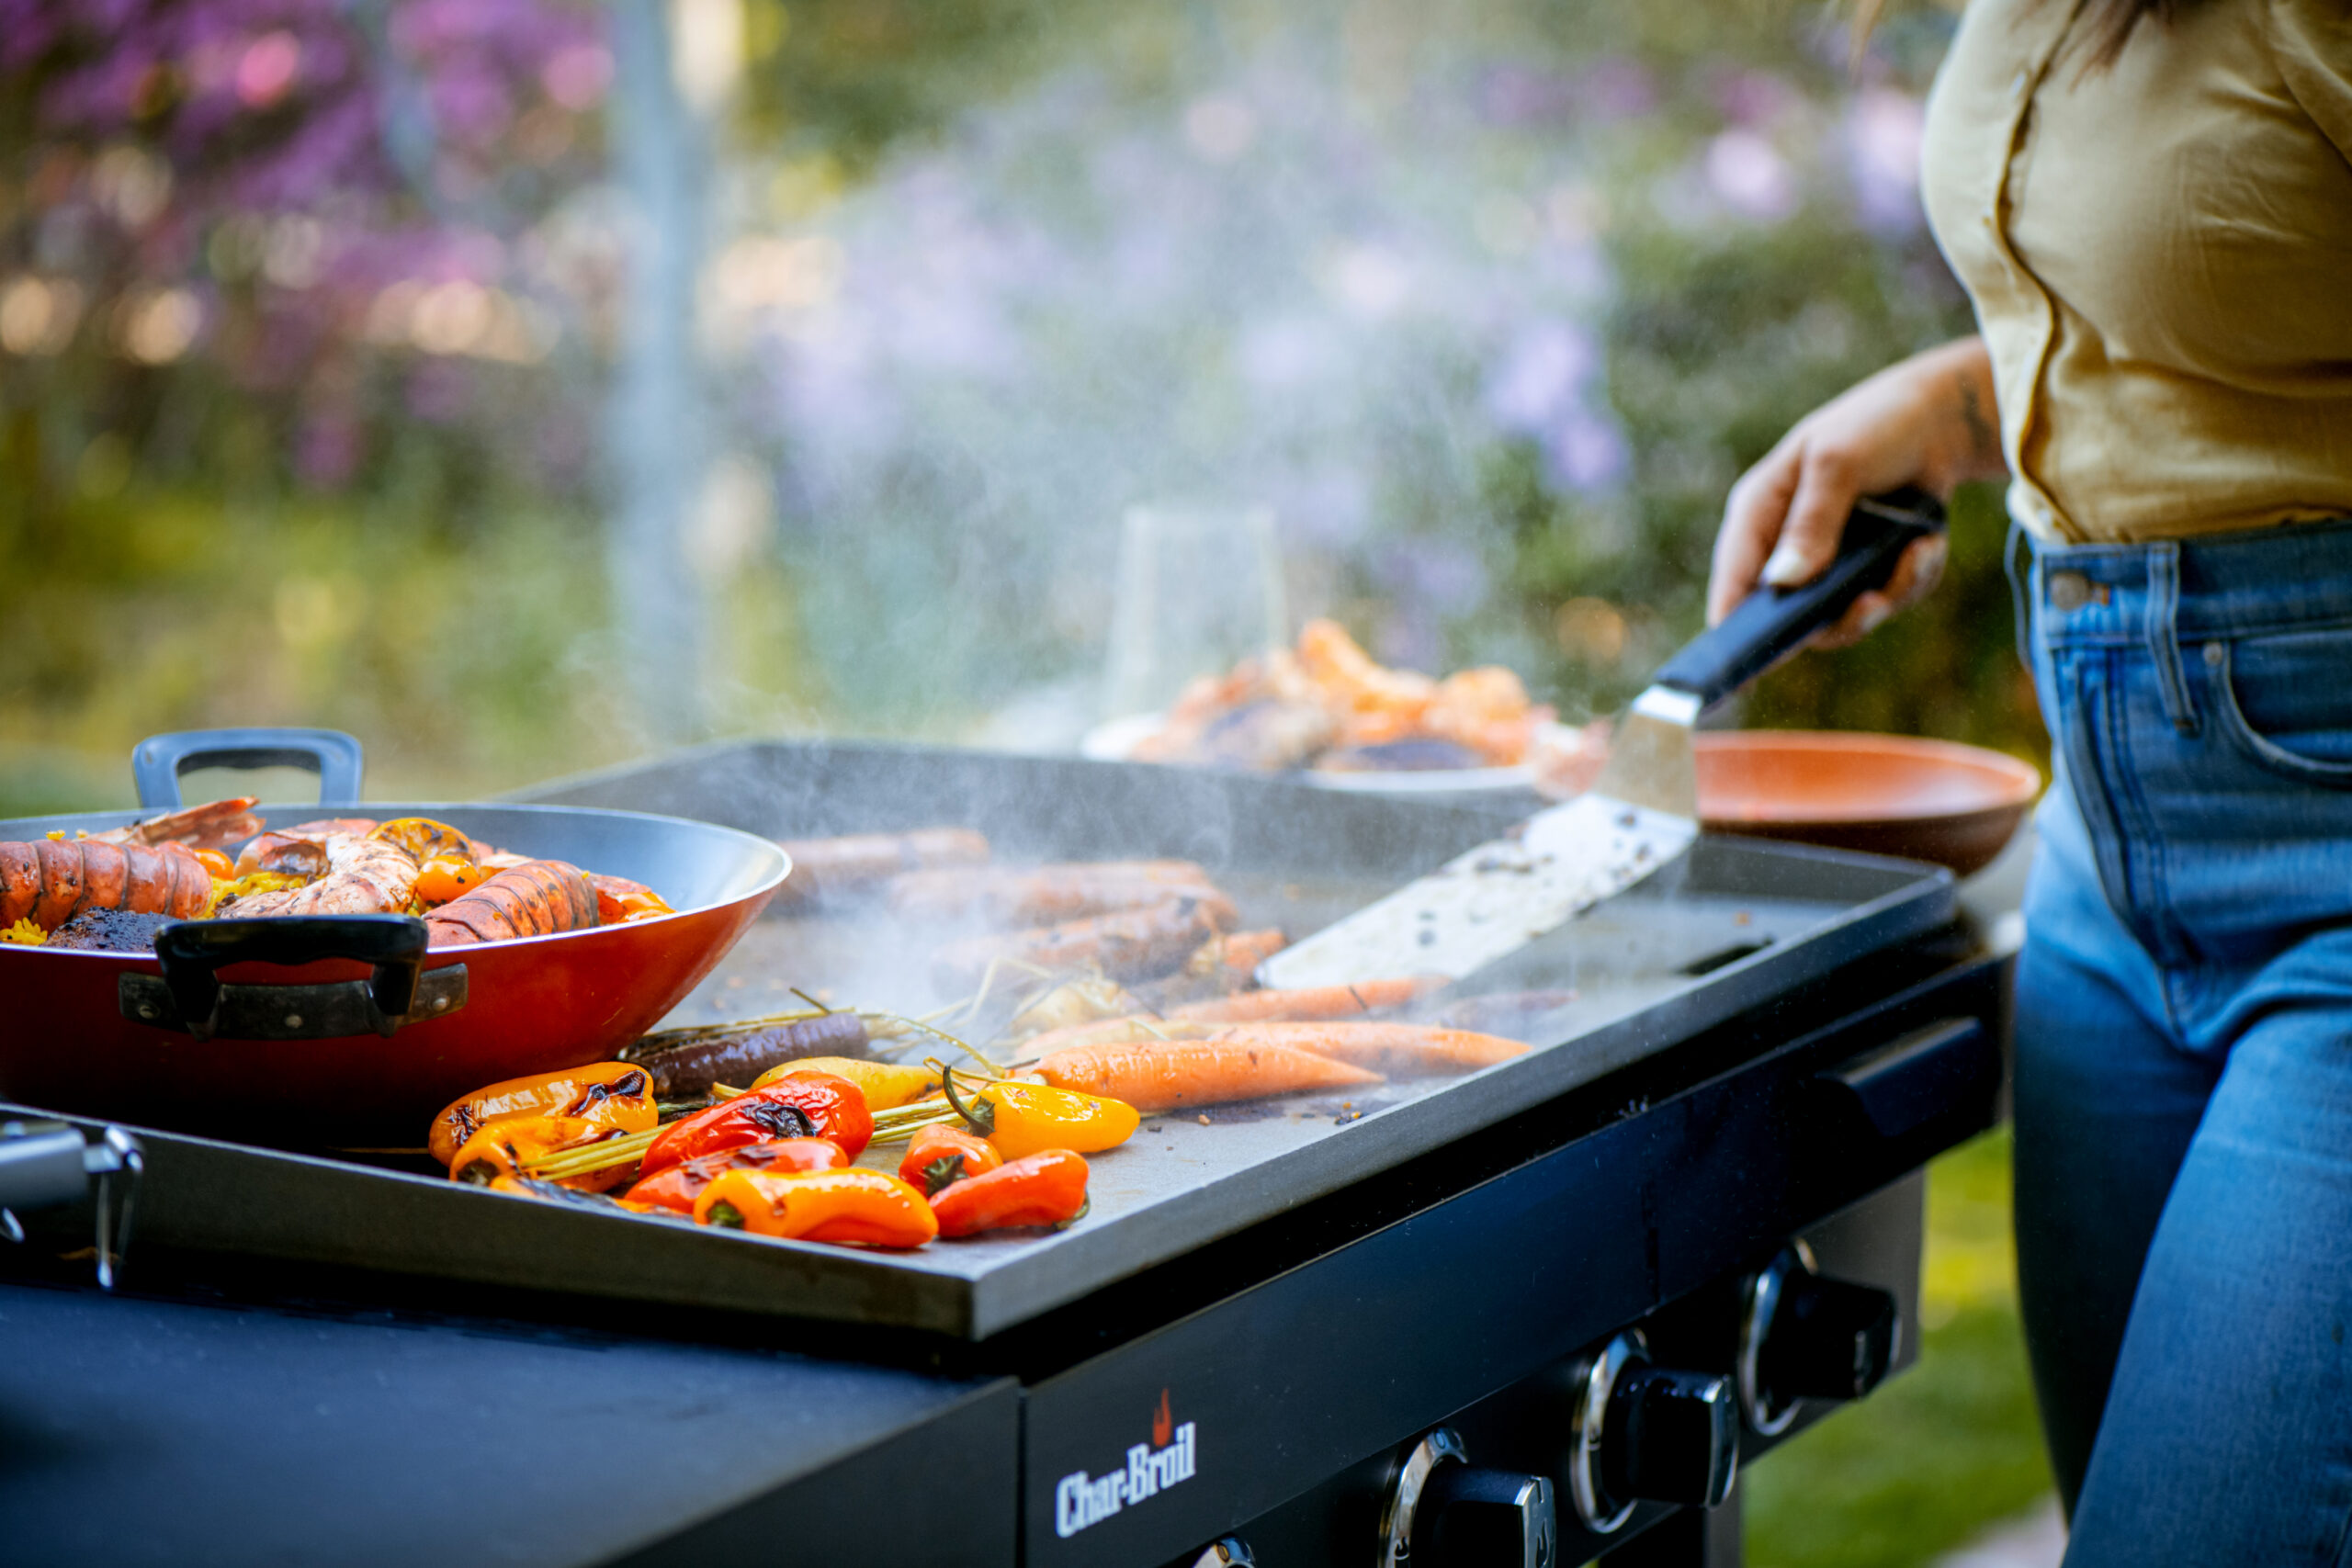 Char broil grills